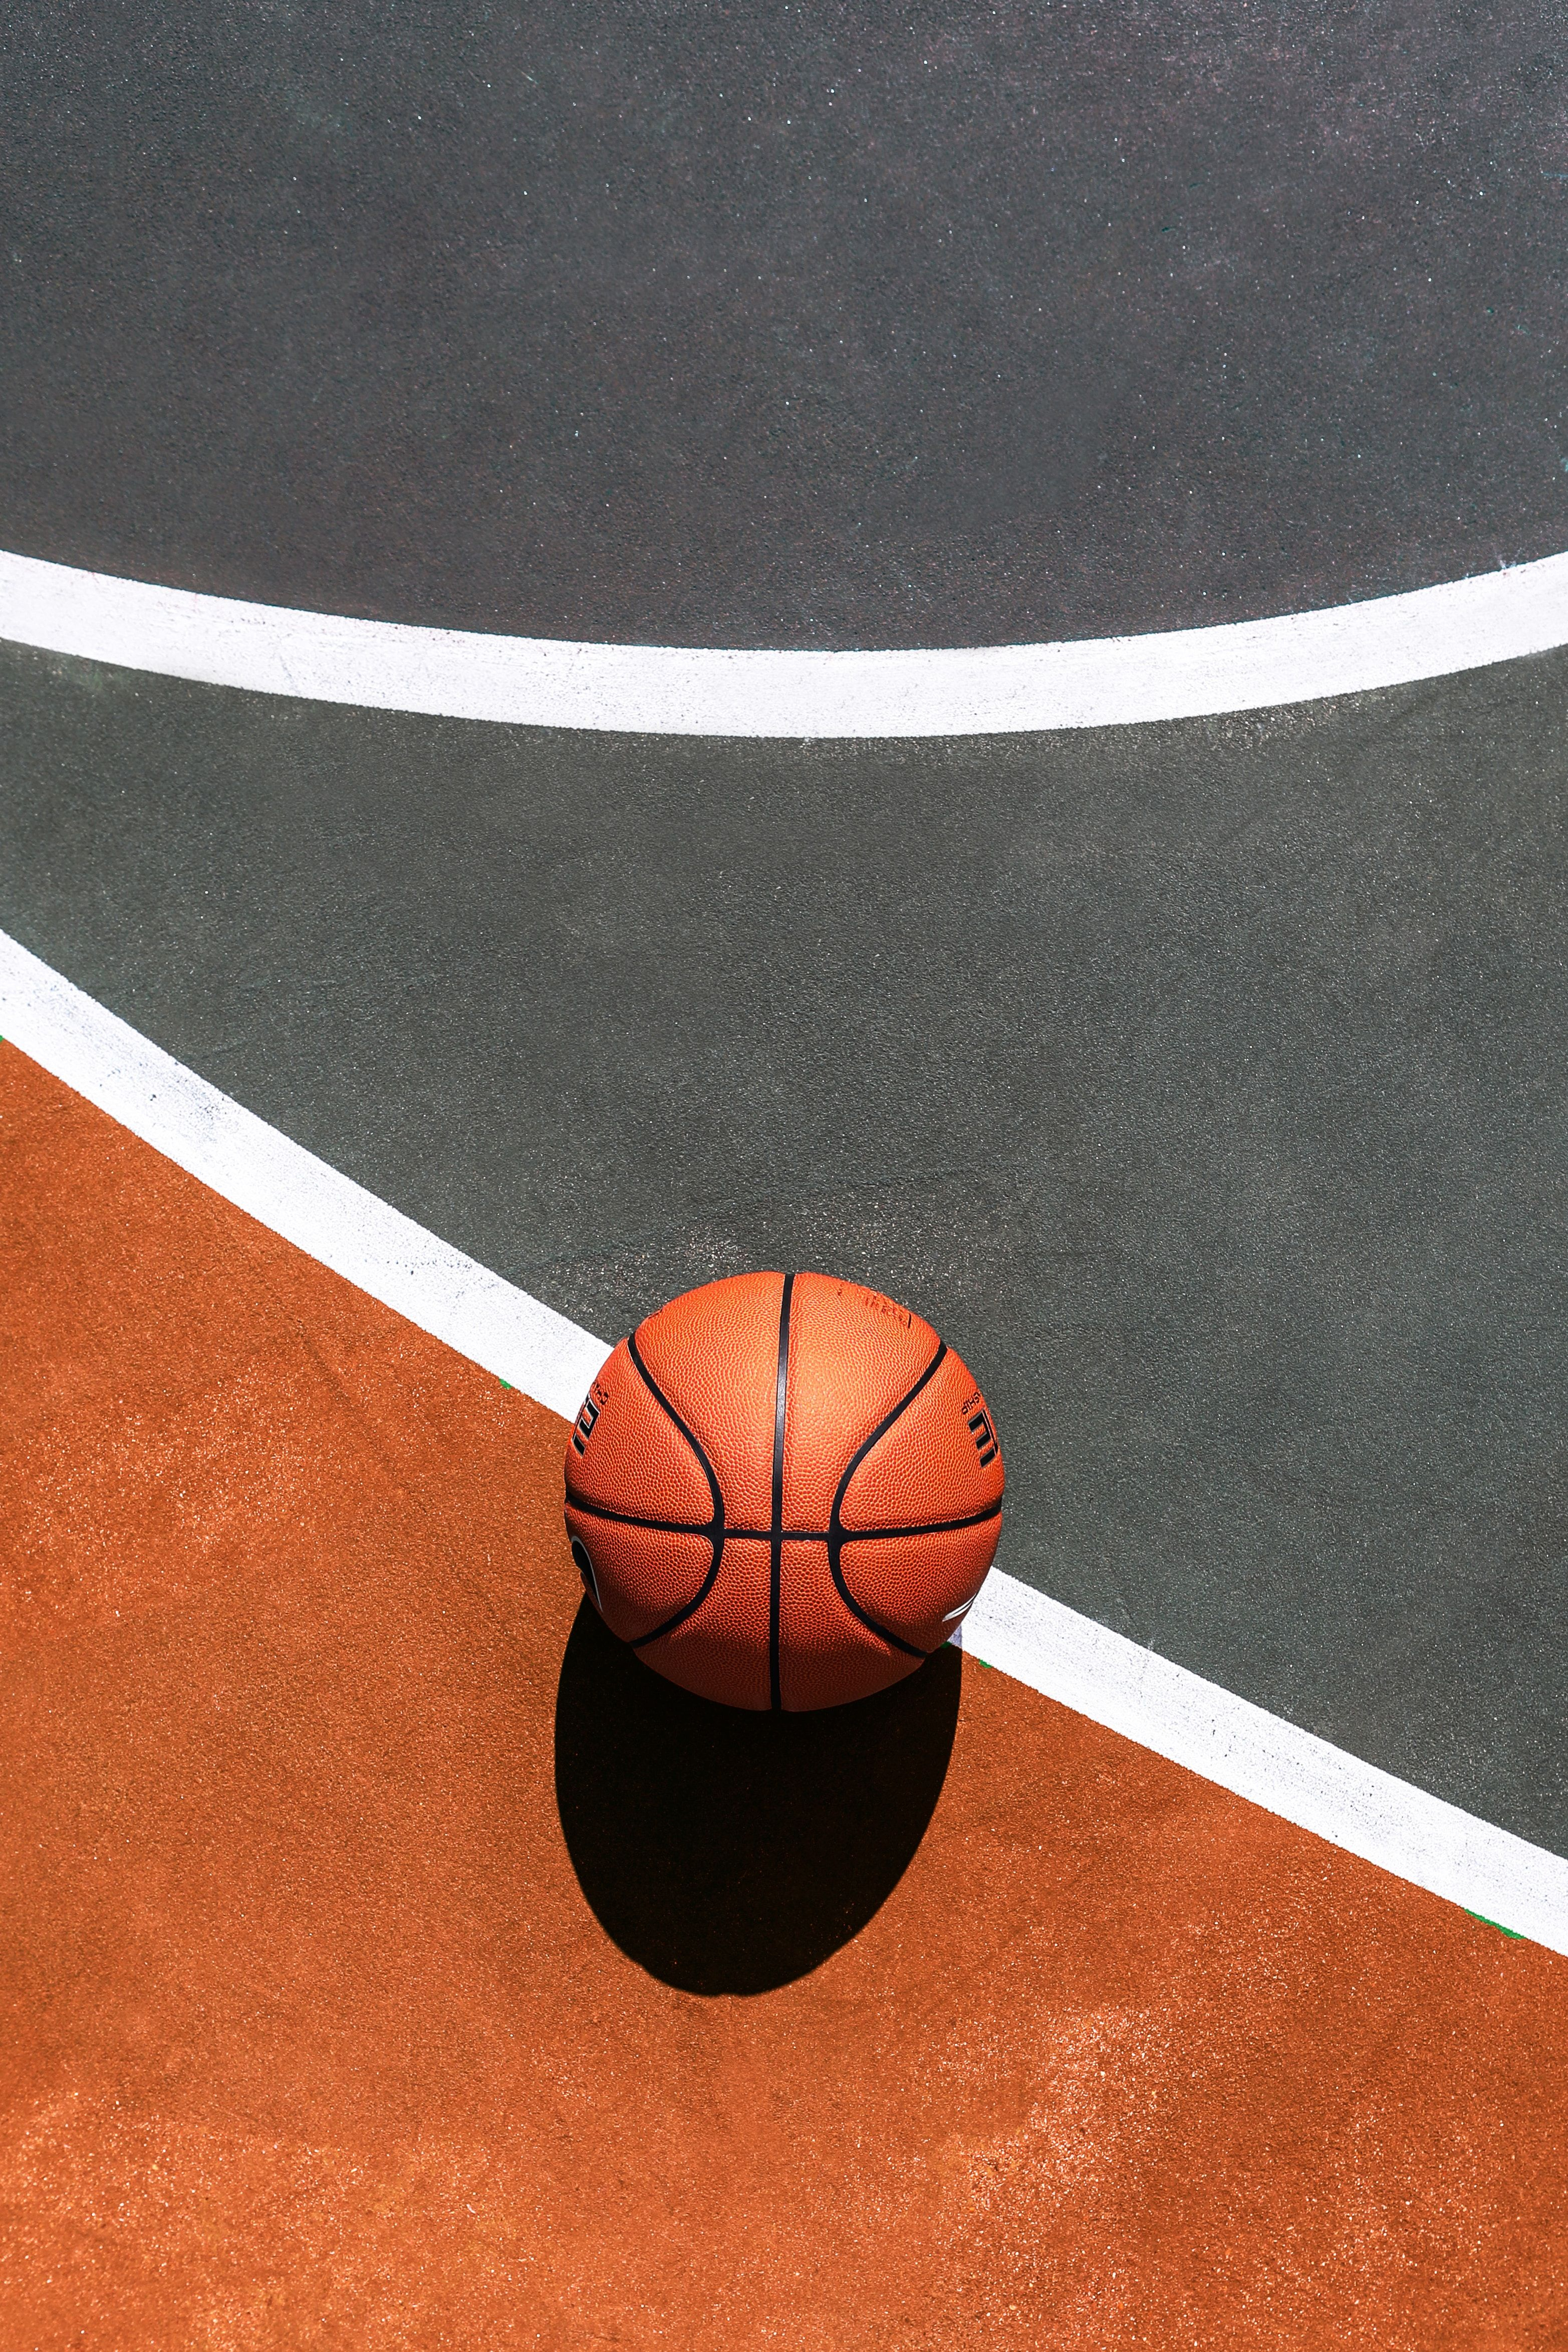 Basketball Time Basketball Time Quiz In 2020 Basketball Wallpaper Basketball Sports Images